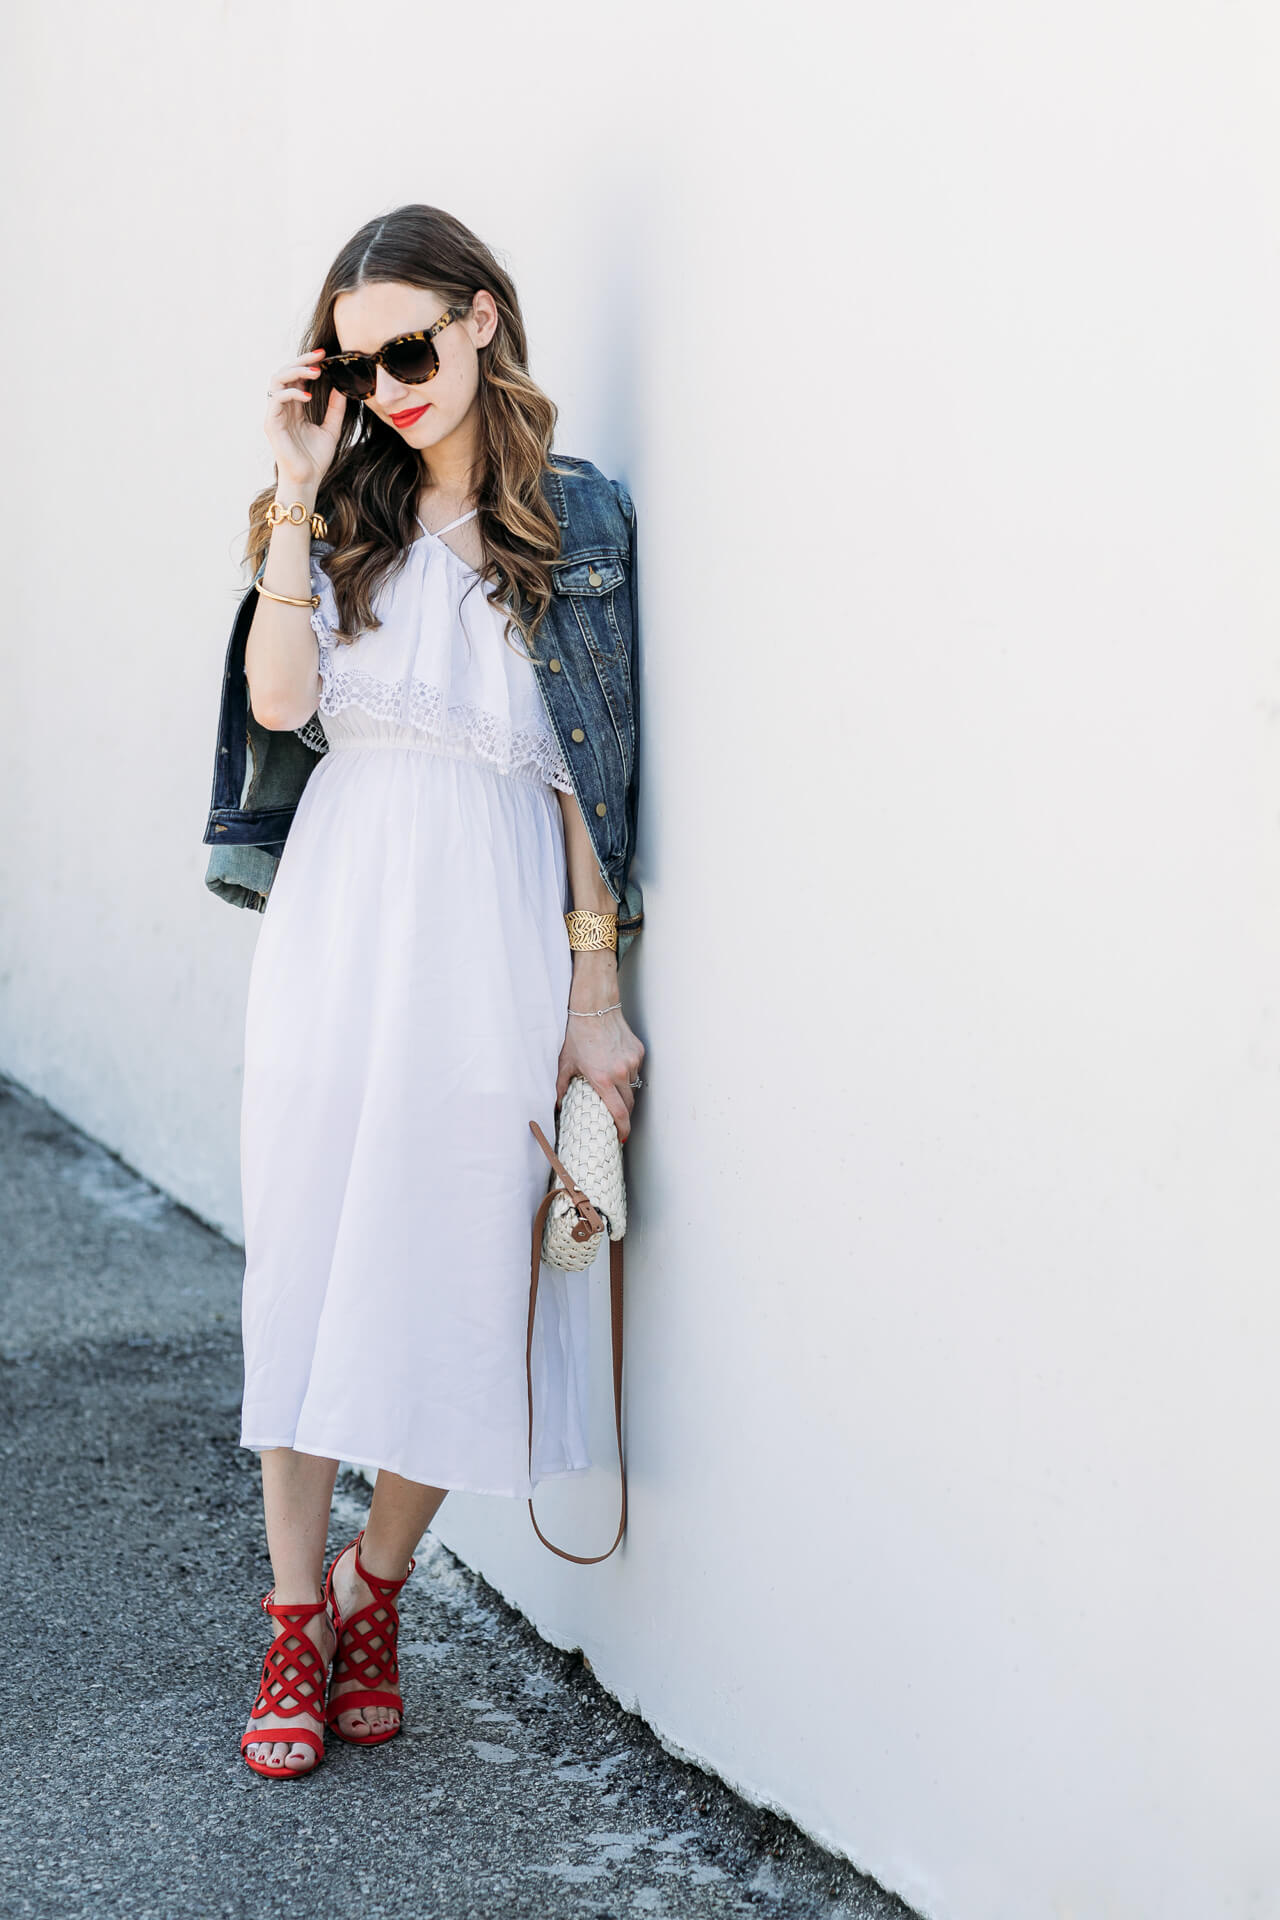 Love this effortless Summer outfit for hitting the beach or going on a date